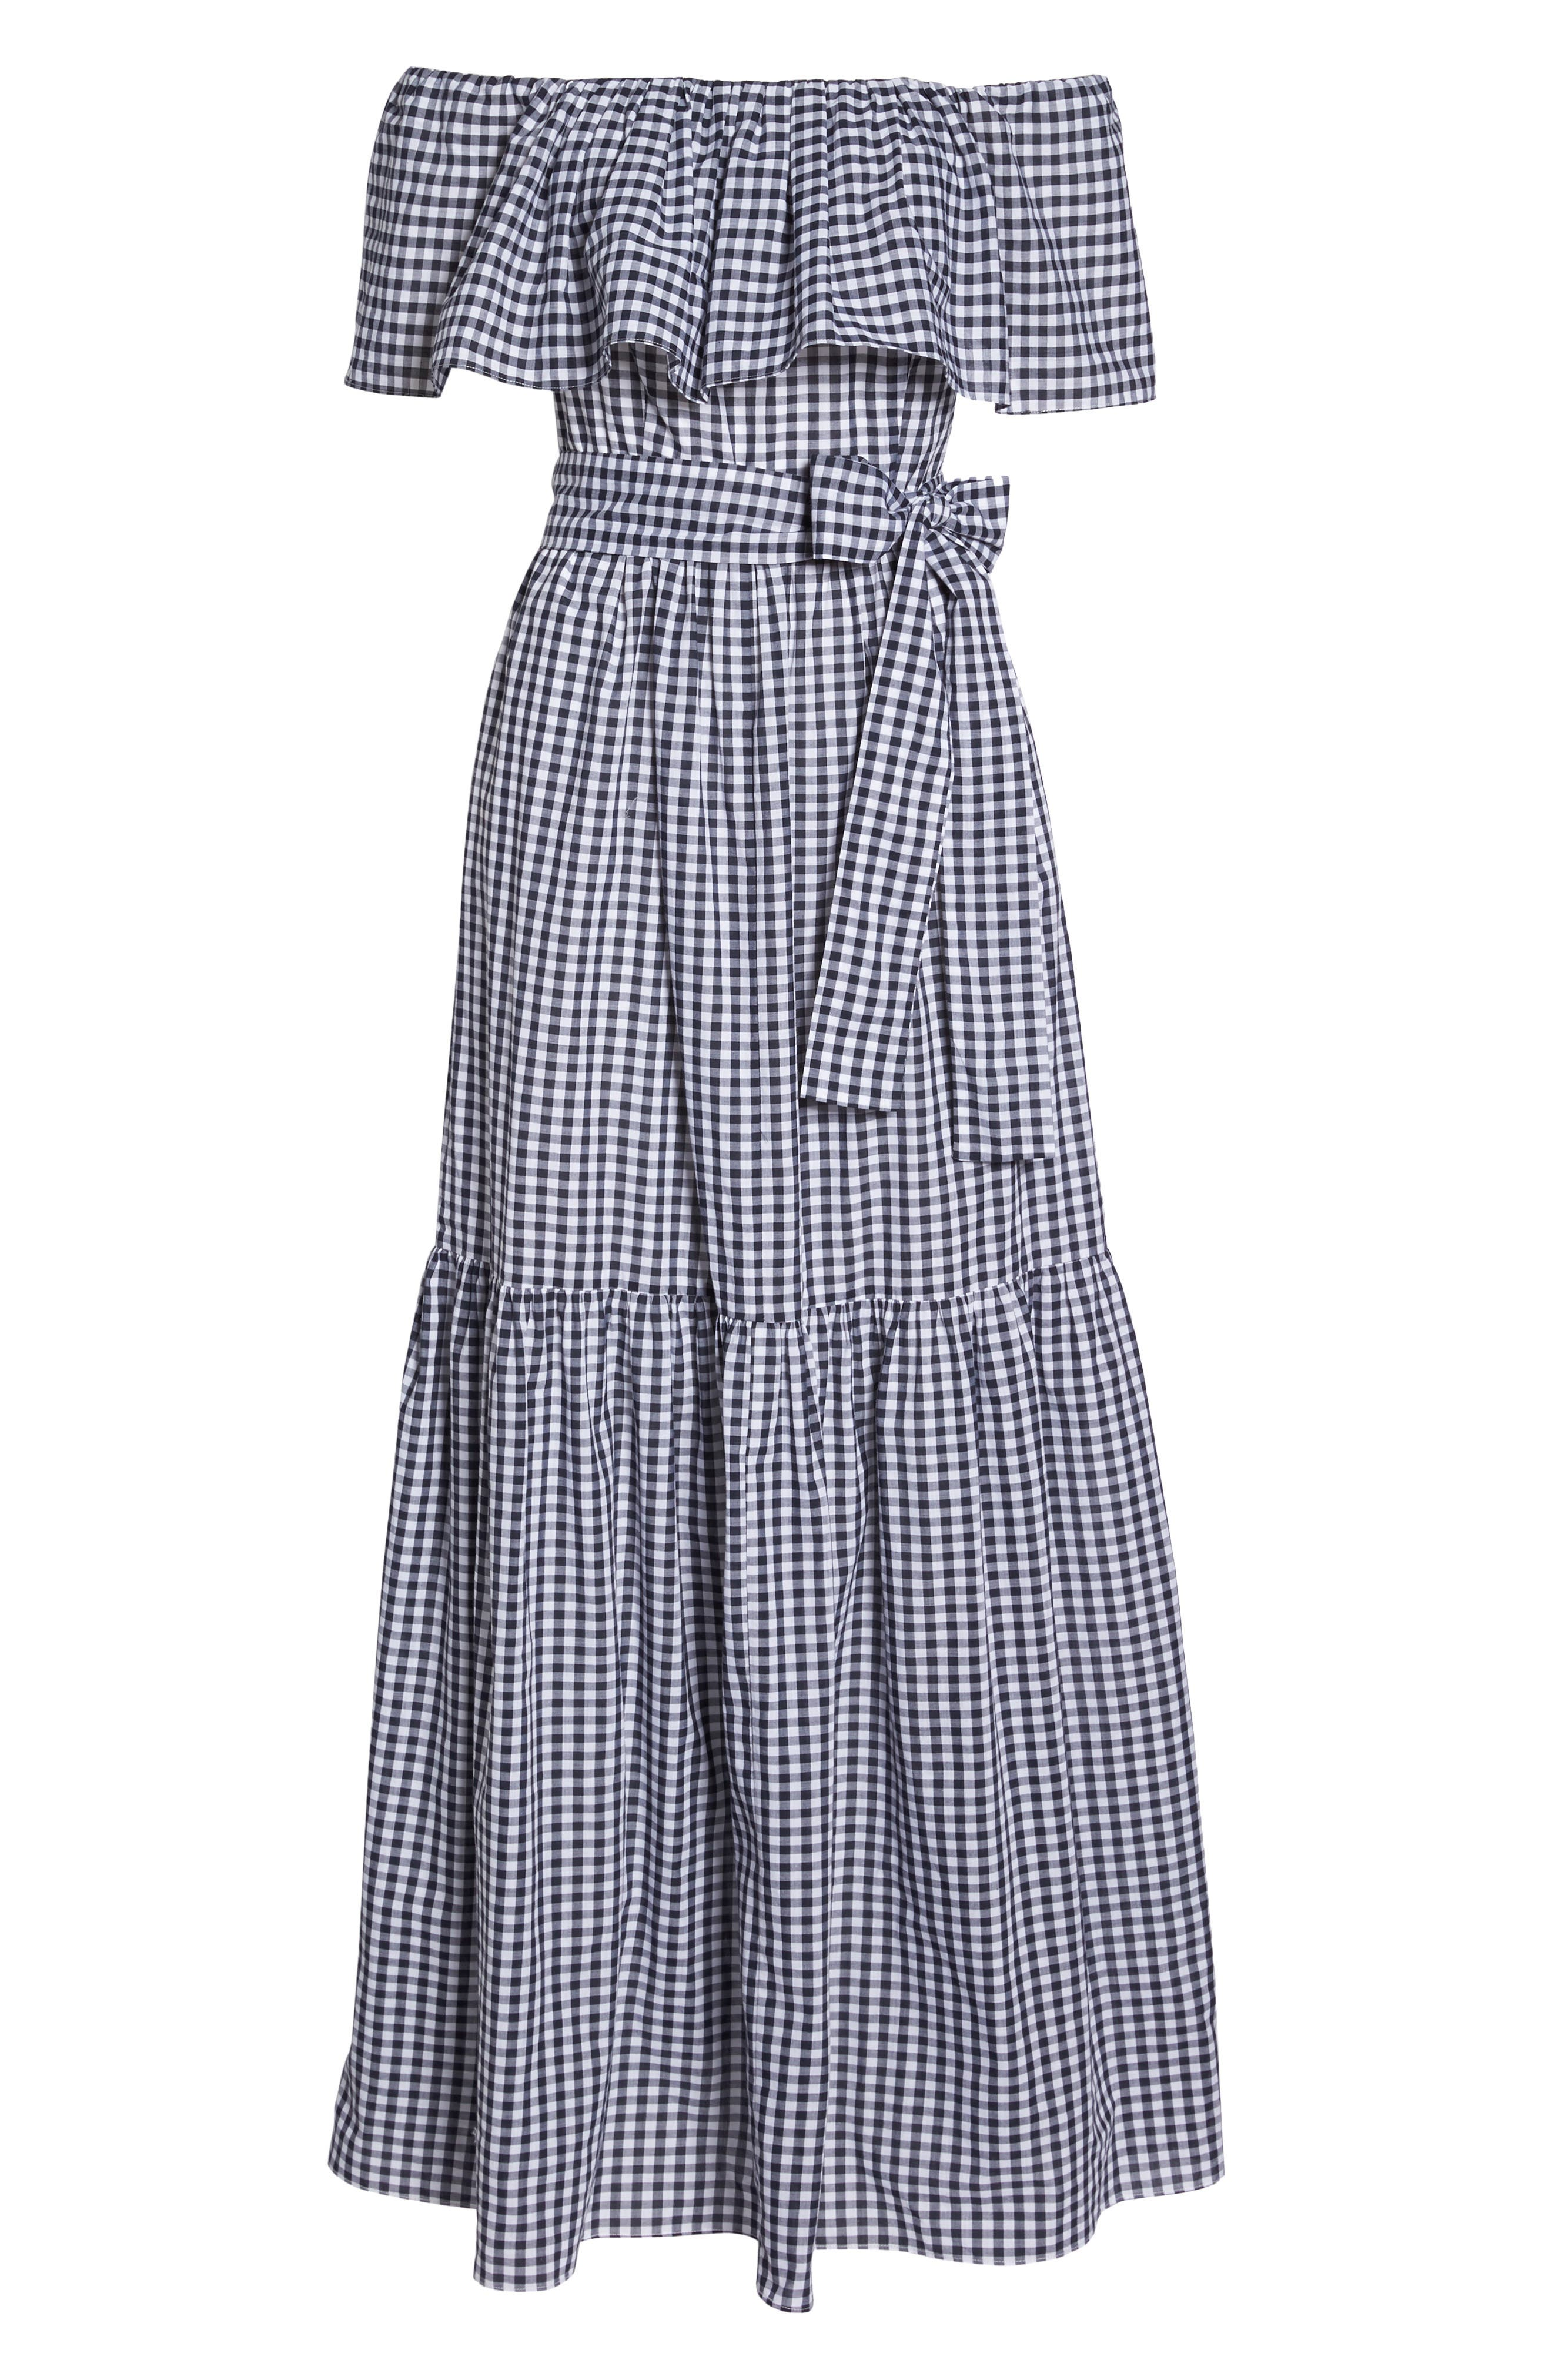 Off the Shoulder Ruffle Gingham Maxi Dress,                             Alternate thumbnail 7, color,                             410